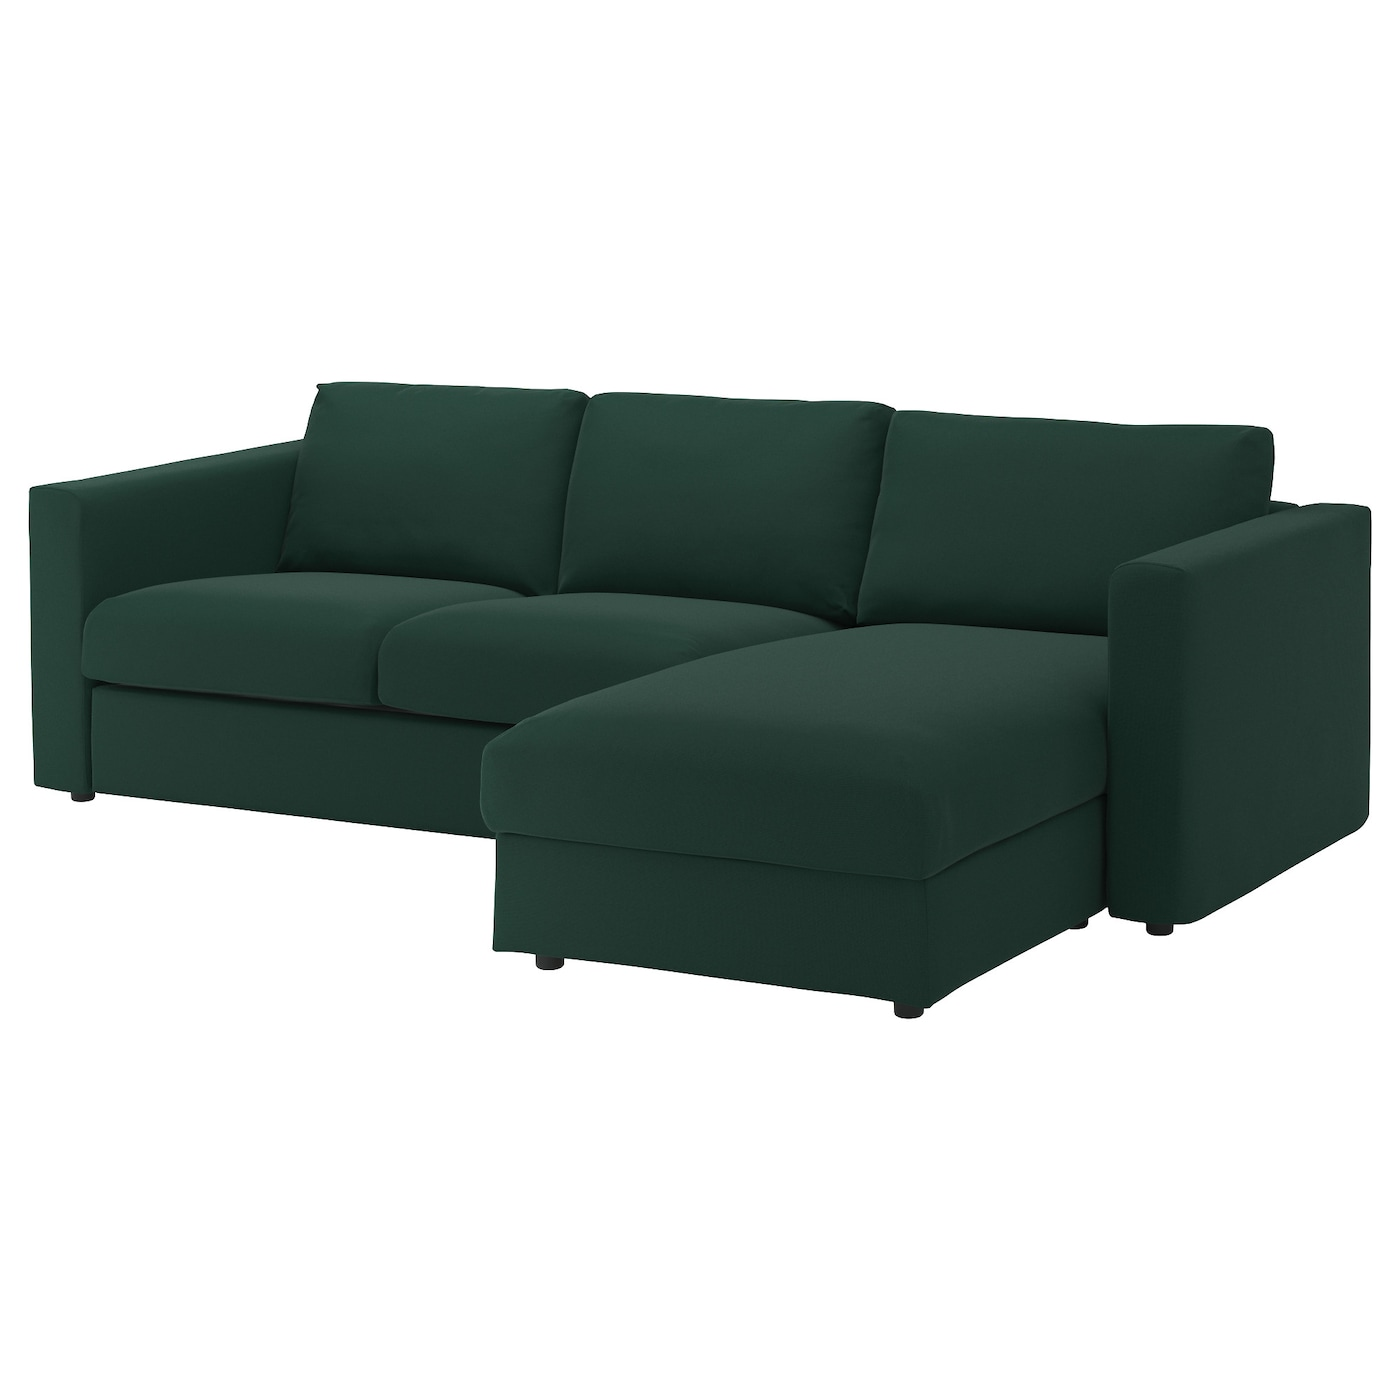 Vimle 3 seat sofa with chaise longue gunnared dark green for 3 seater couch with chaise